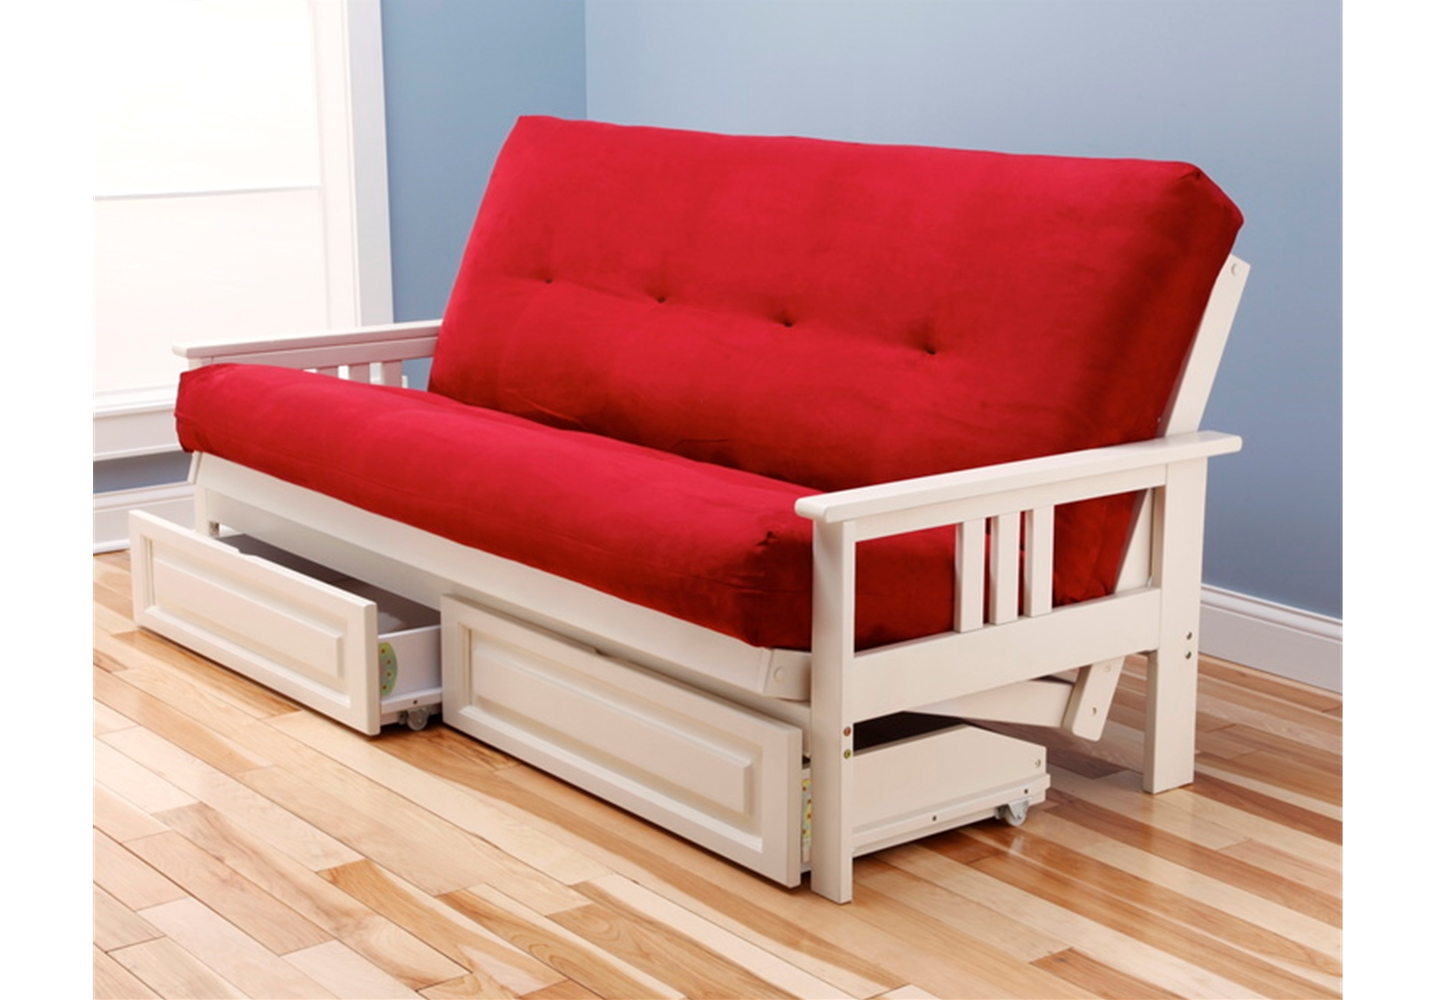 Mission Arm White Full Futon Frame With Mattress In Suede Red